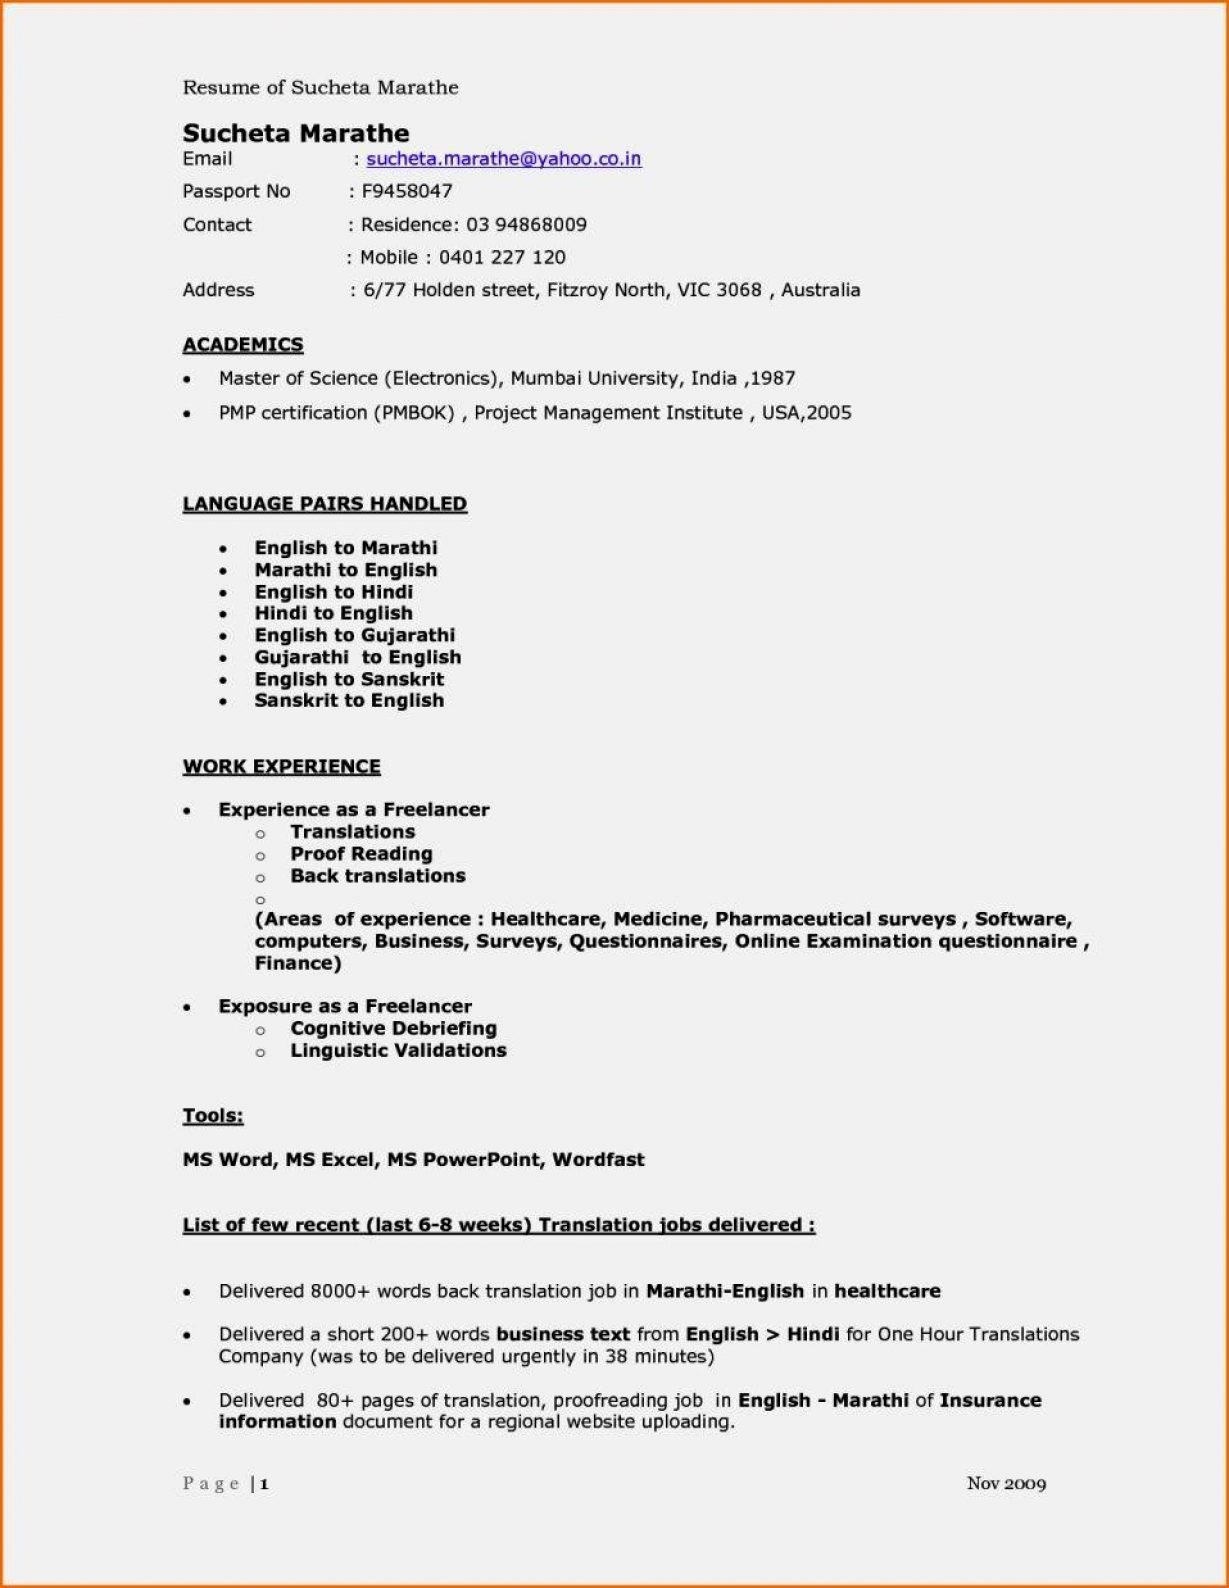 A Cv Template For A 16 Year Old